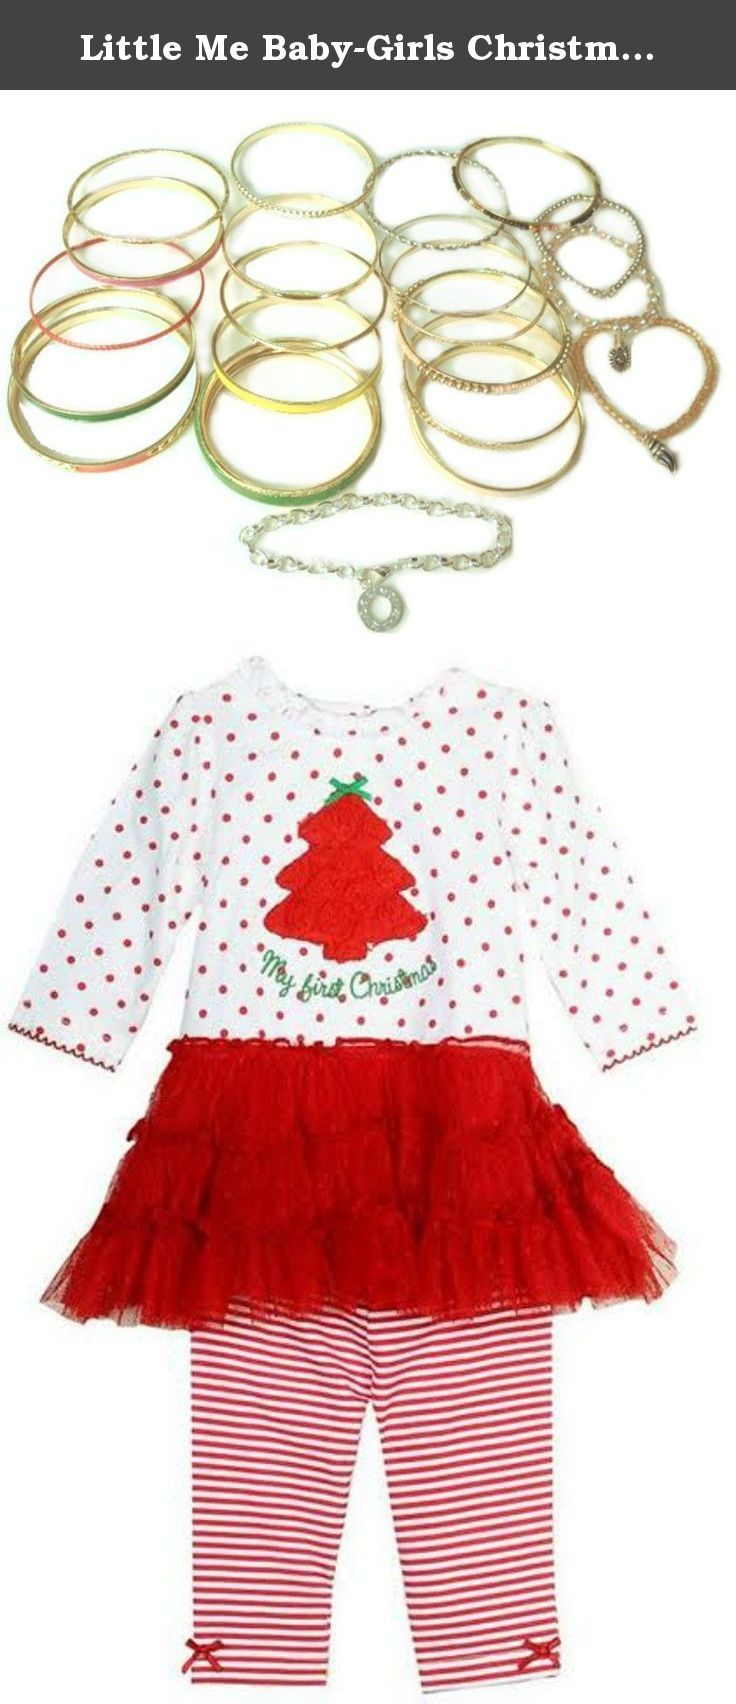 "Little Me Baby-Girls Christmas Tutu Dress Legging Set 0-3 months. With details such as ruffled trim tree with ""My First Christmas Applique"" and bow accents this holiday-themed two-piece set is a delight."